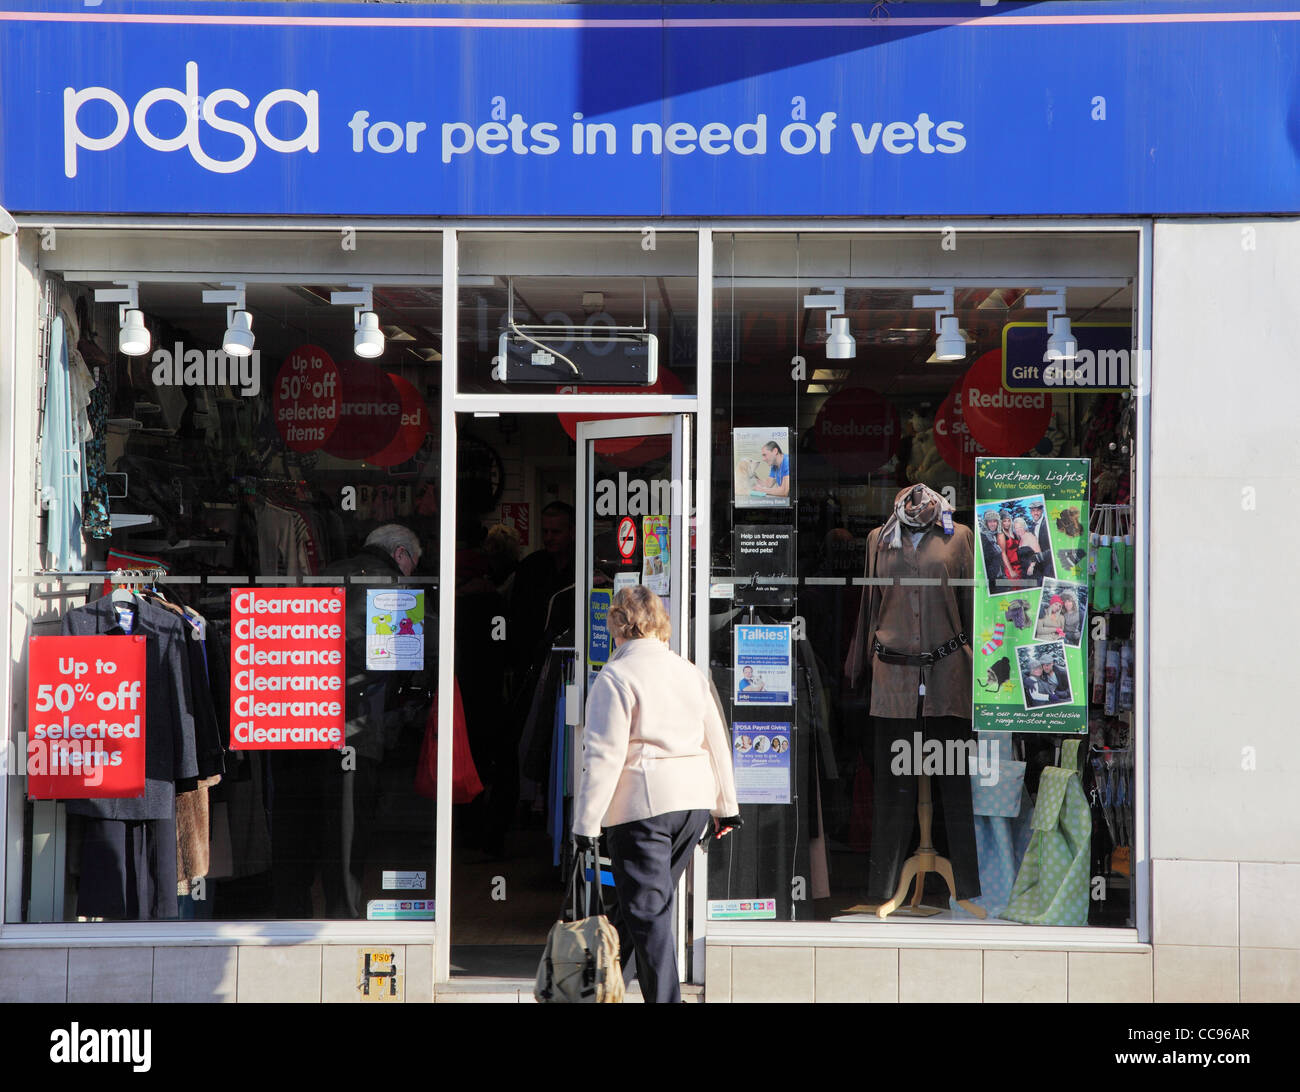 PDSA charity shop Whitley Bay north east England, UK - Stock Image